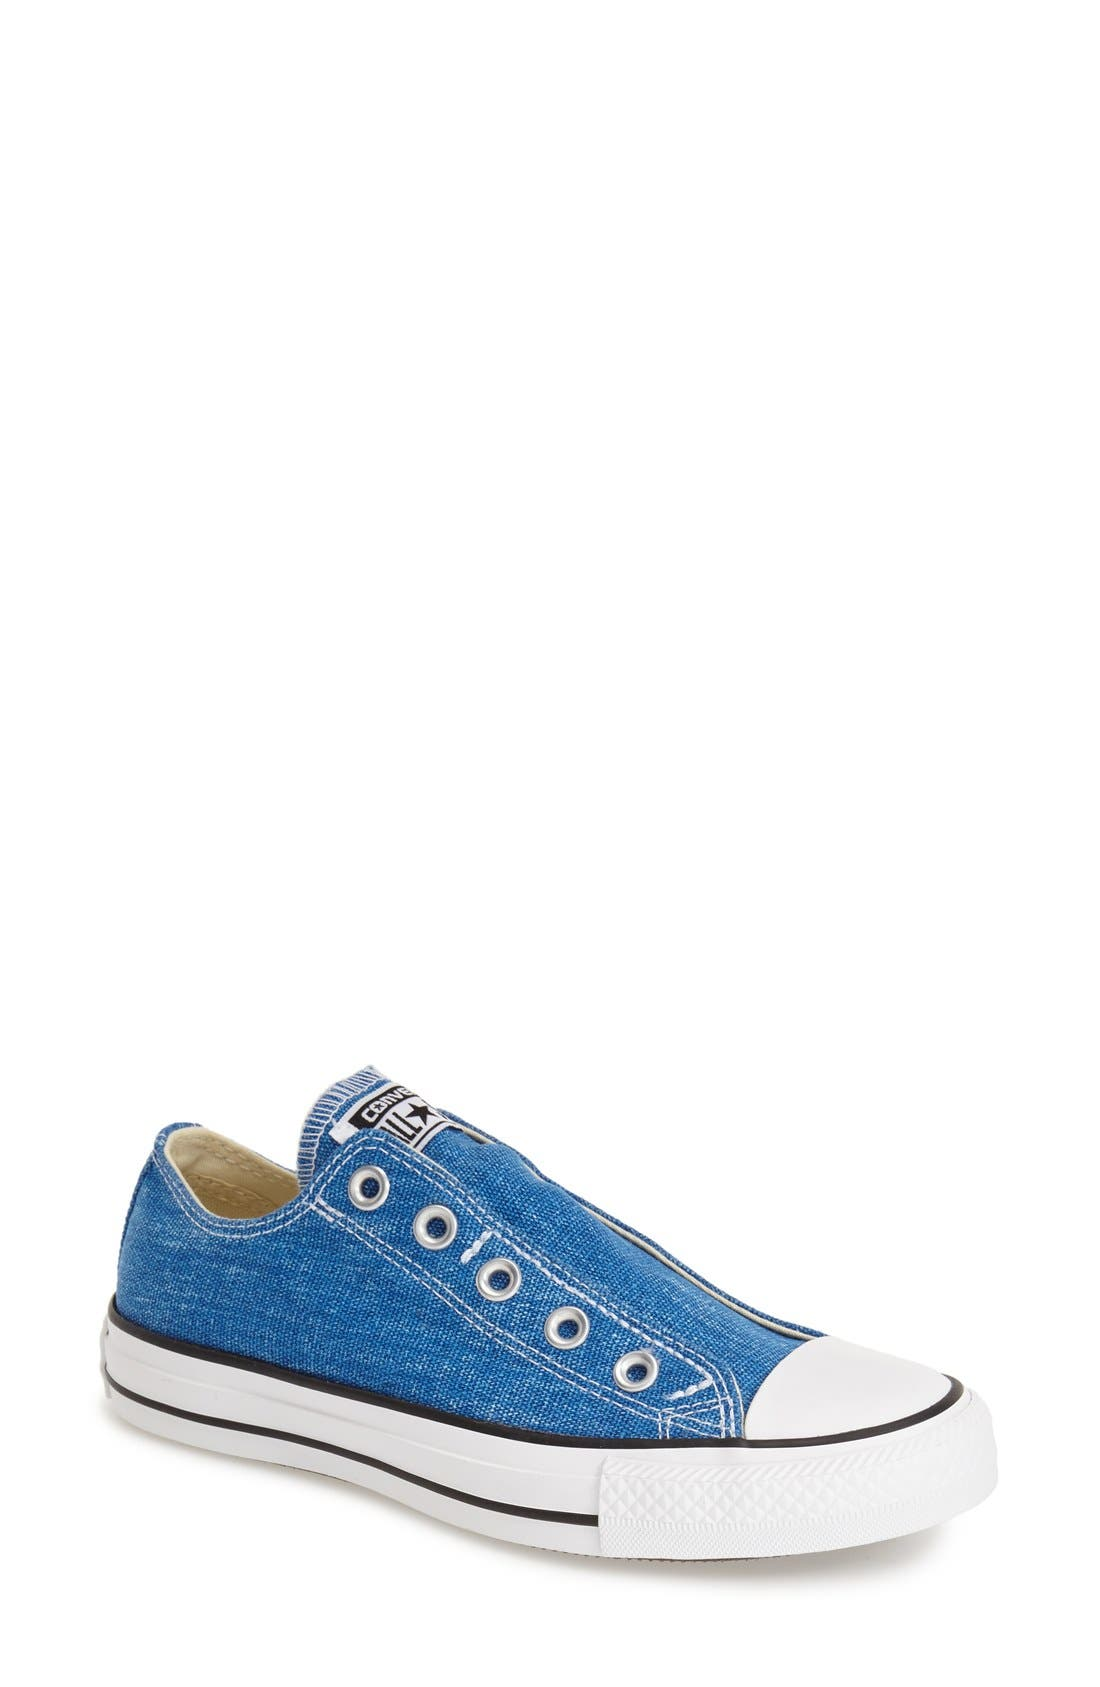 Alternate Image 1 Selected - Converse Chuck Taylor® All Star® 'Washed' Slip-On (Women)